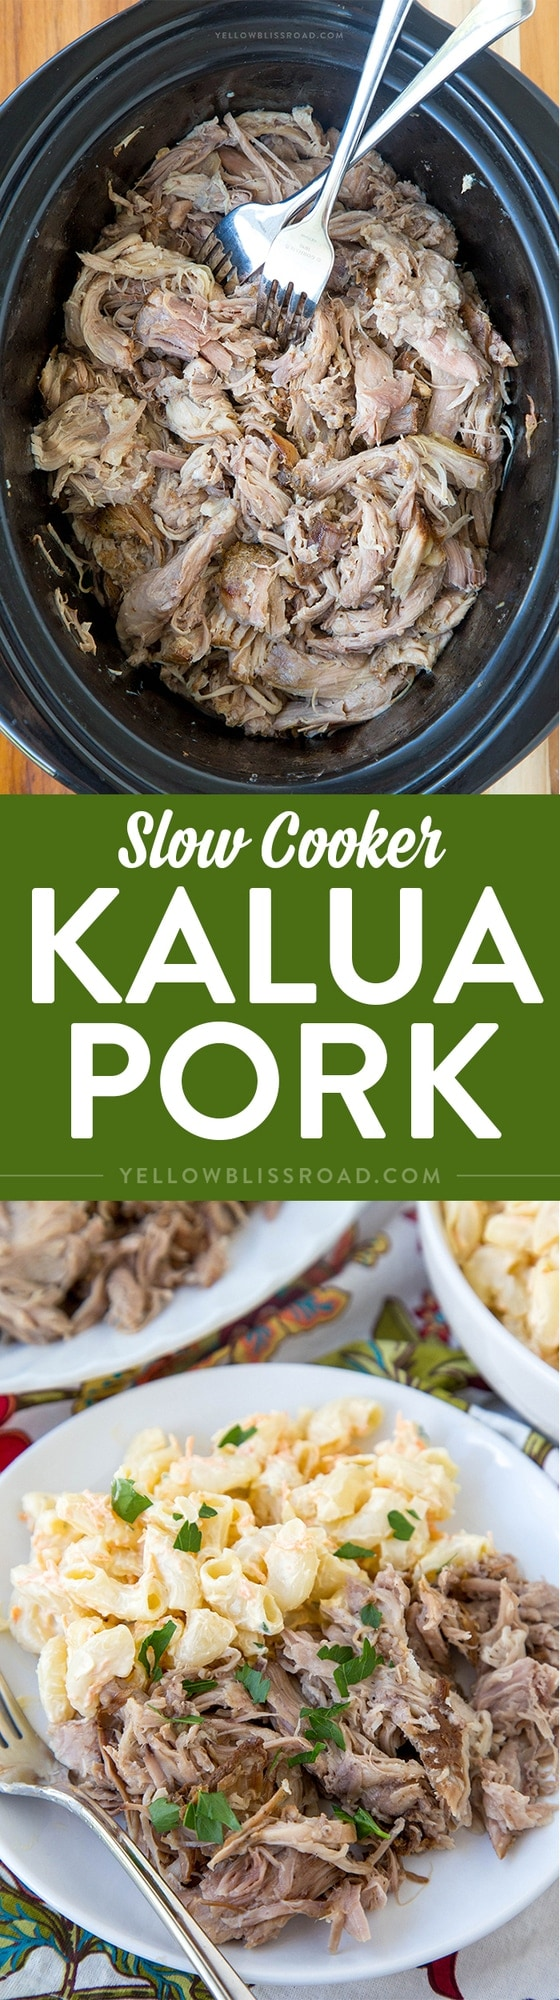 Easy Slow Cooker Kalua Pork - The best Hawaiian meat and so easy in your slow cooker